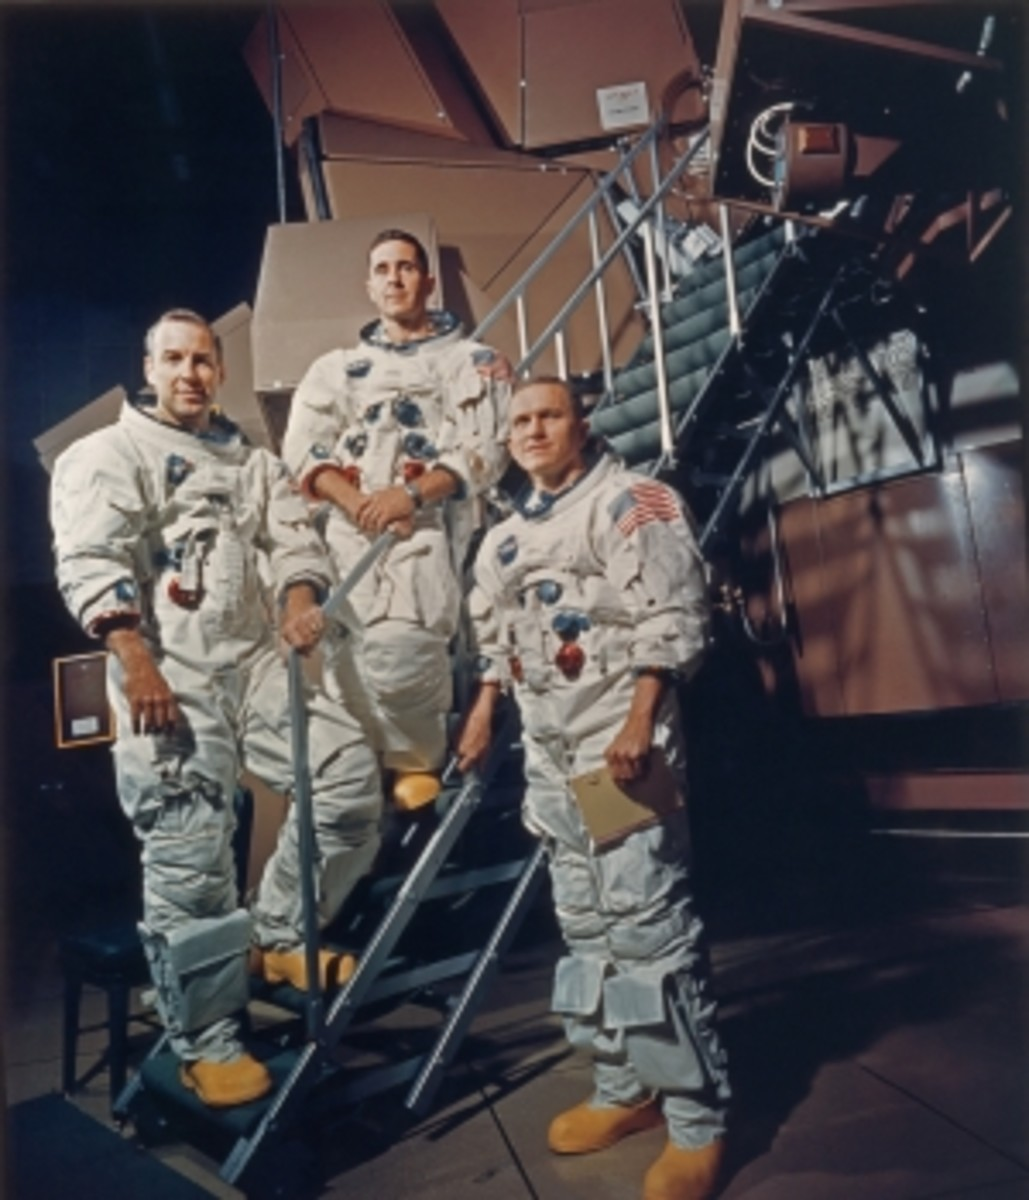 The crew of Apollo 8 in their space suits on a Kennedy Space Center simulator. Left to right: James A. Lovell Jr., William A. Anders and Frank Borman.